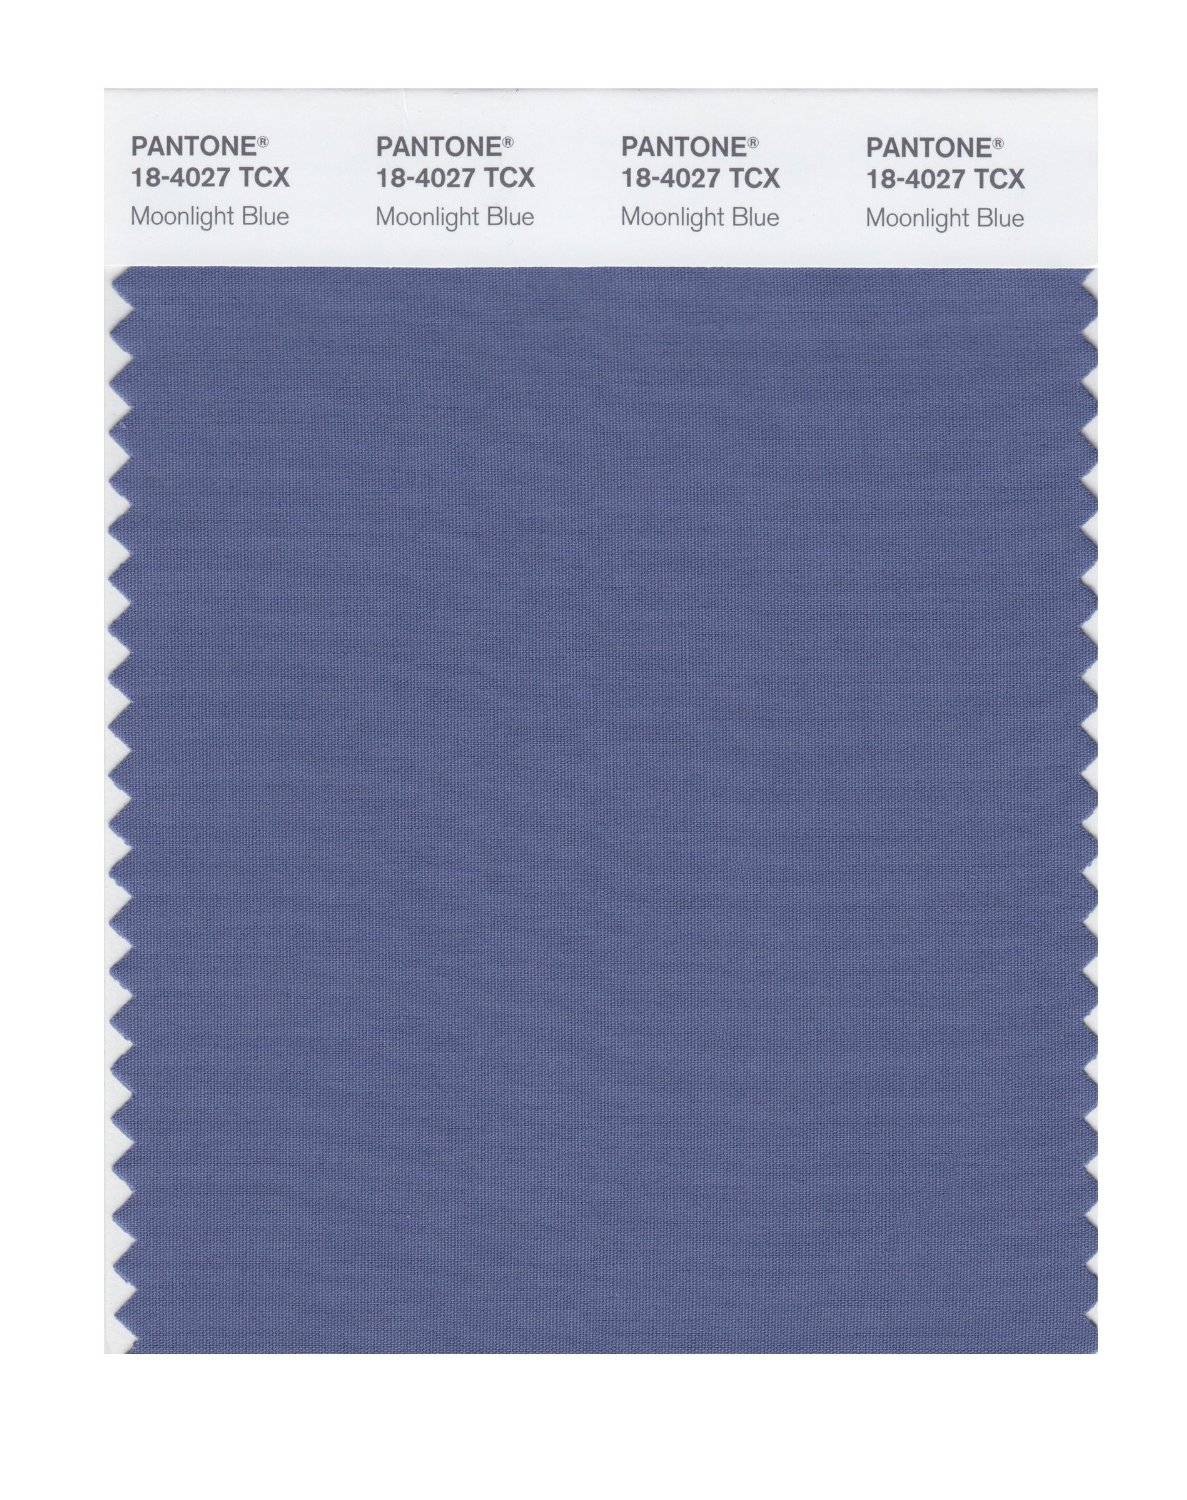 Pantone Smart Swatch 18-4027 Moonlight Blue